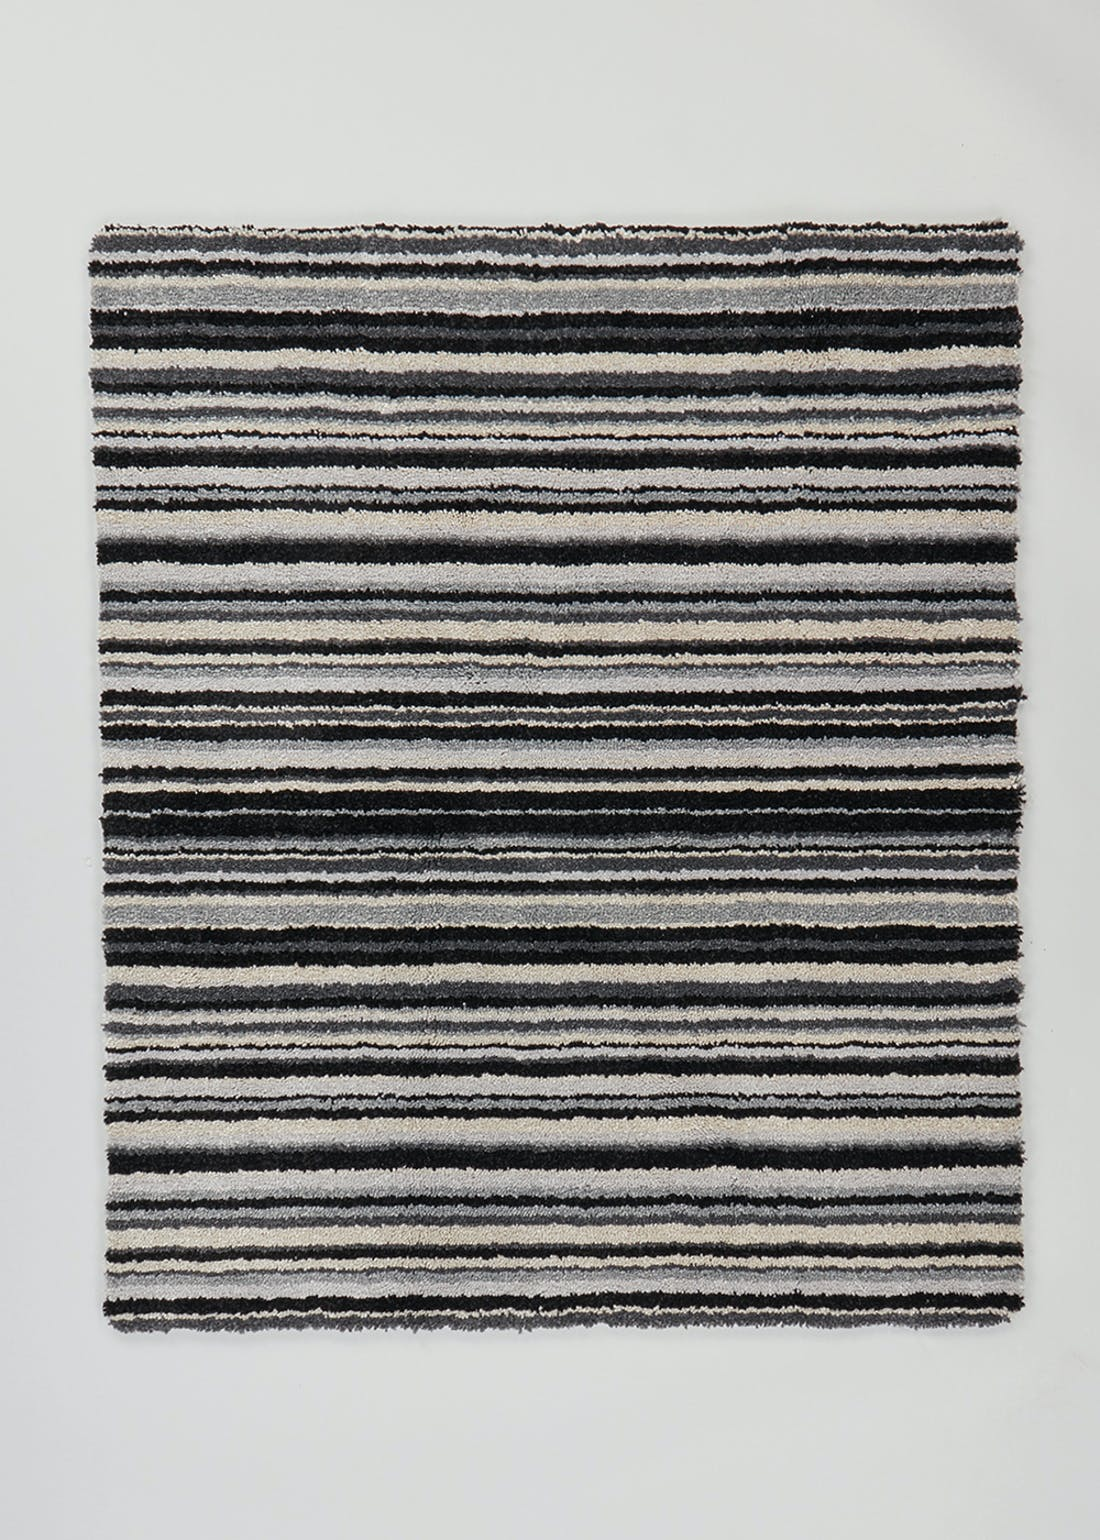 Striped Muddle Mat (95cm x 80cm)